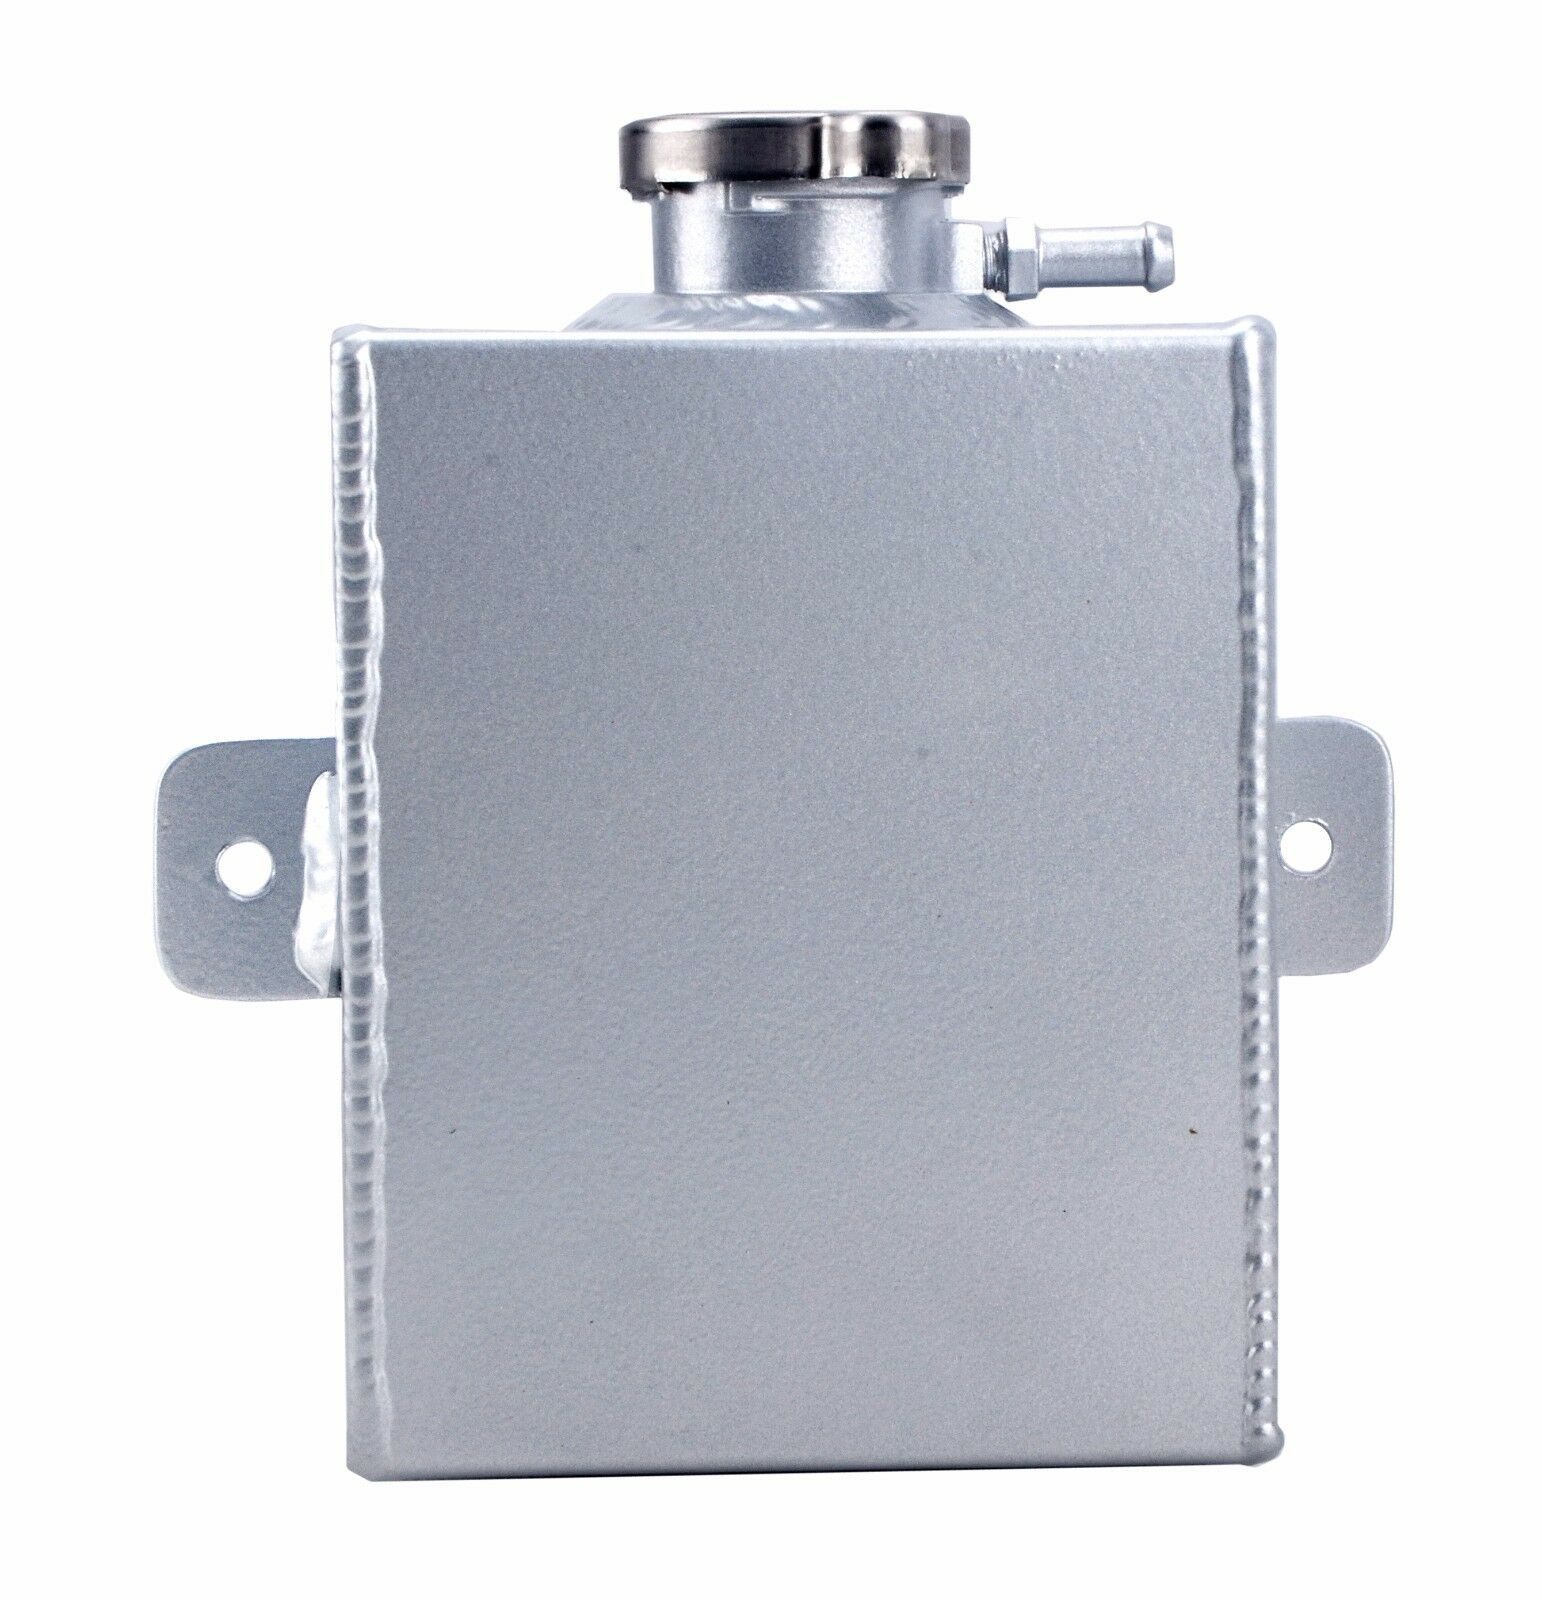 2.5L Capcity Aluminum Coolant Radiator Expansion Tank Bottle with Cap Silver